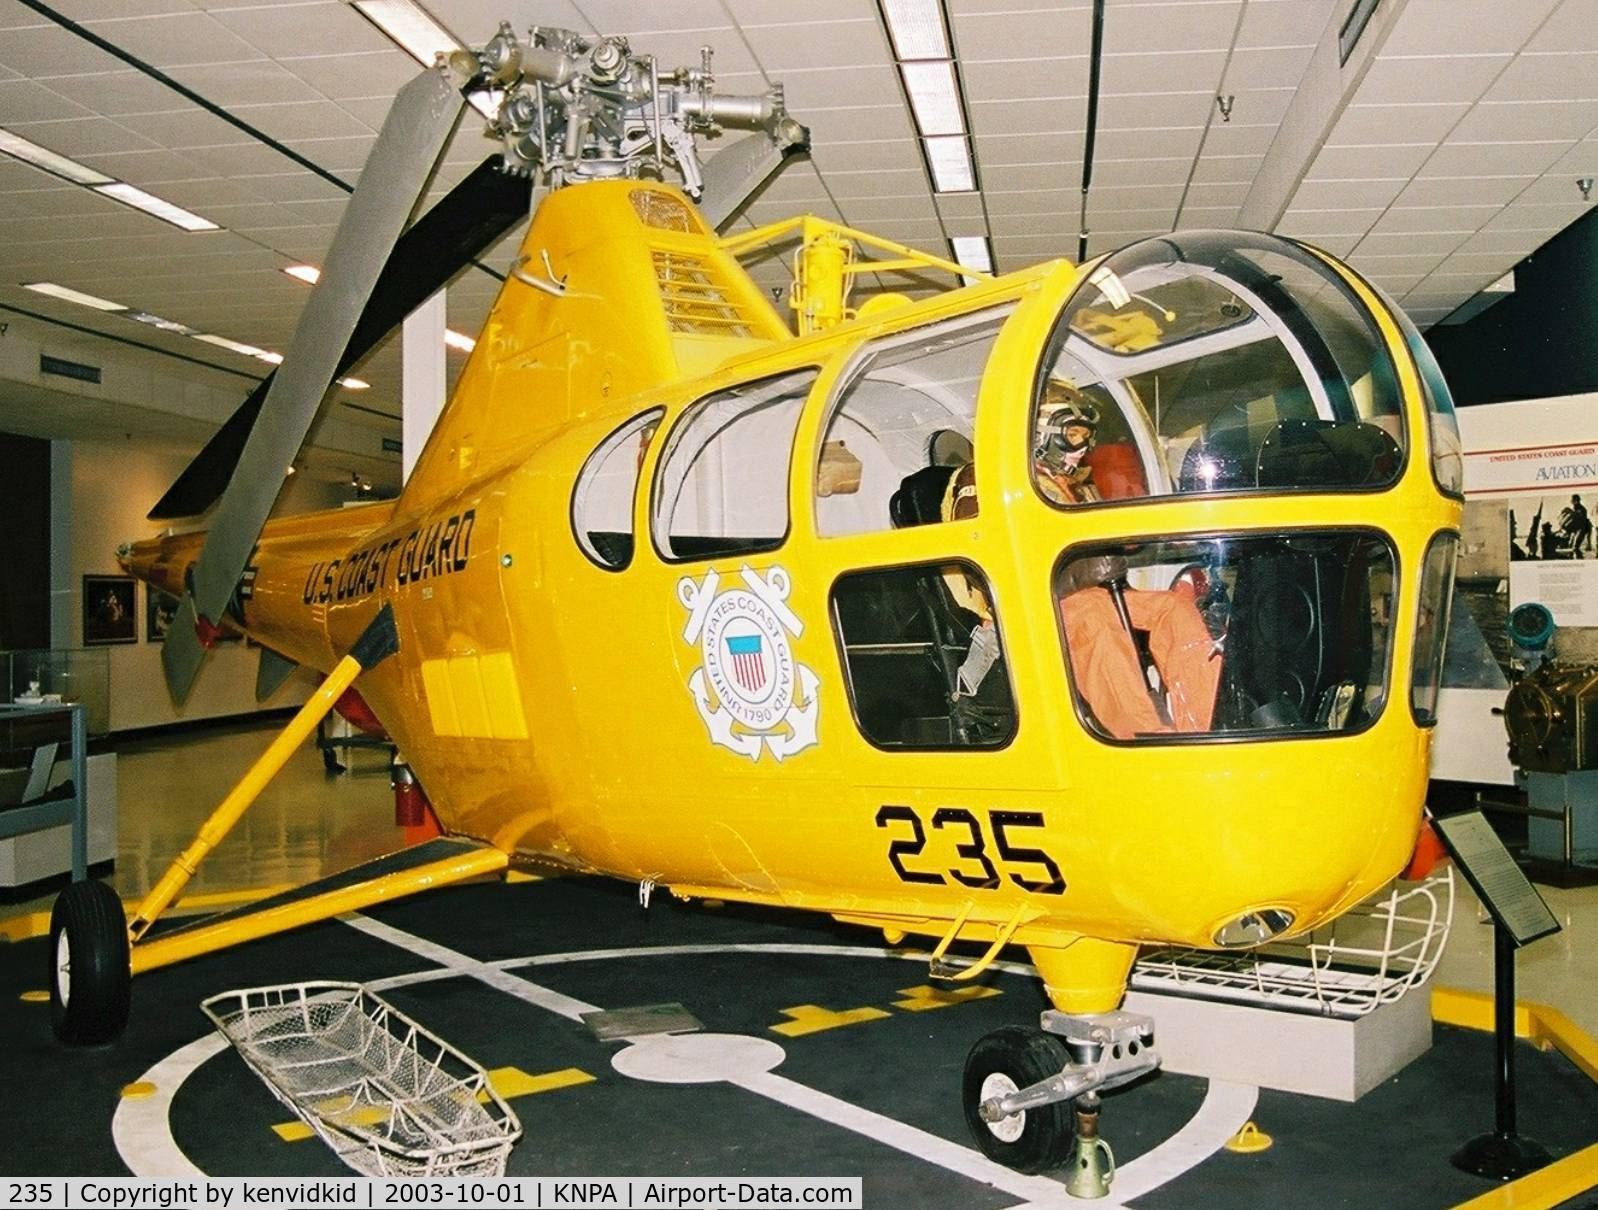 235, 1950 Sikorsky HO3S-1G C/N 51214, On display at the Museum of Naval Aviation, Pensacola.